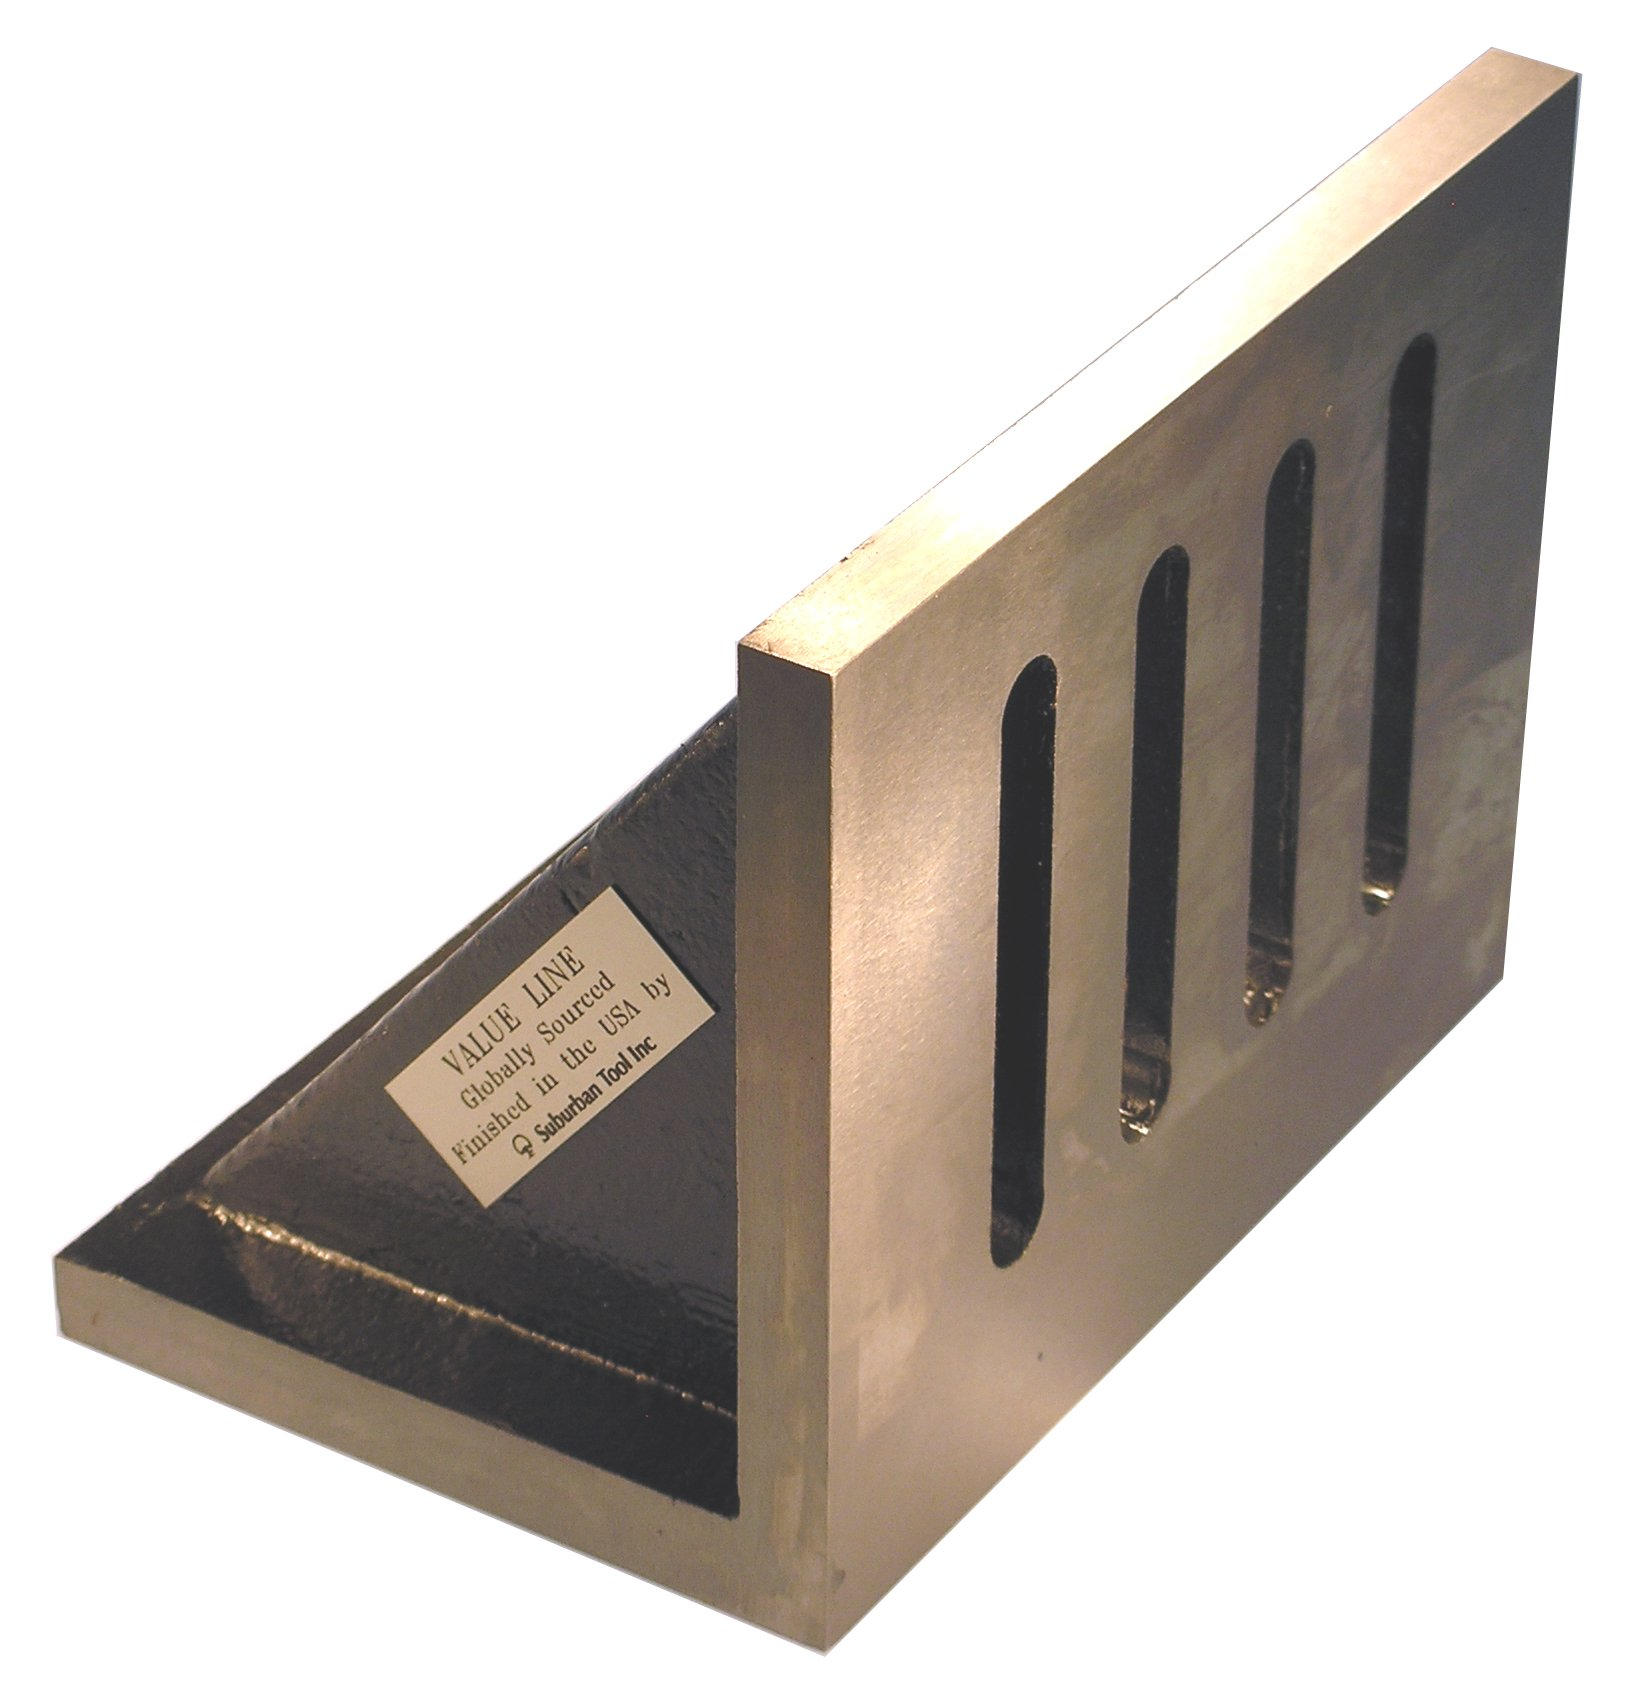 Value Line 9 x 7 x 6 Slotted Angle Plate - Webbed - Ground by Suburban Tool